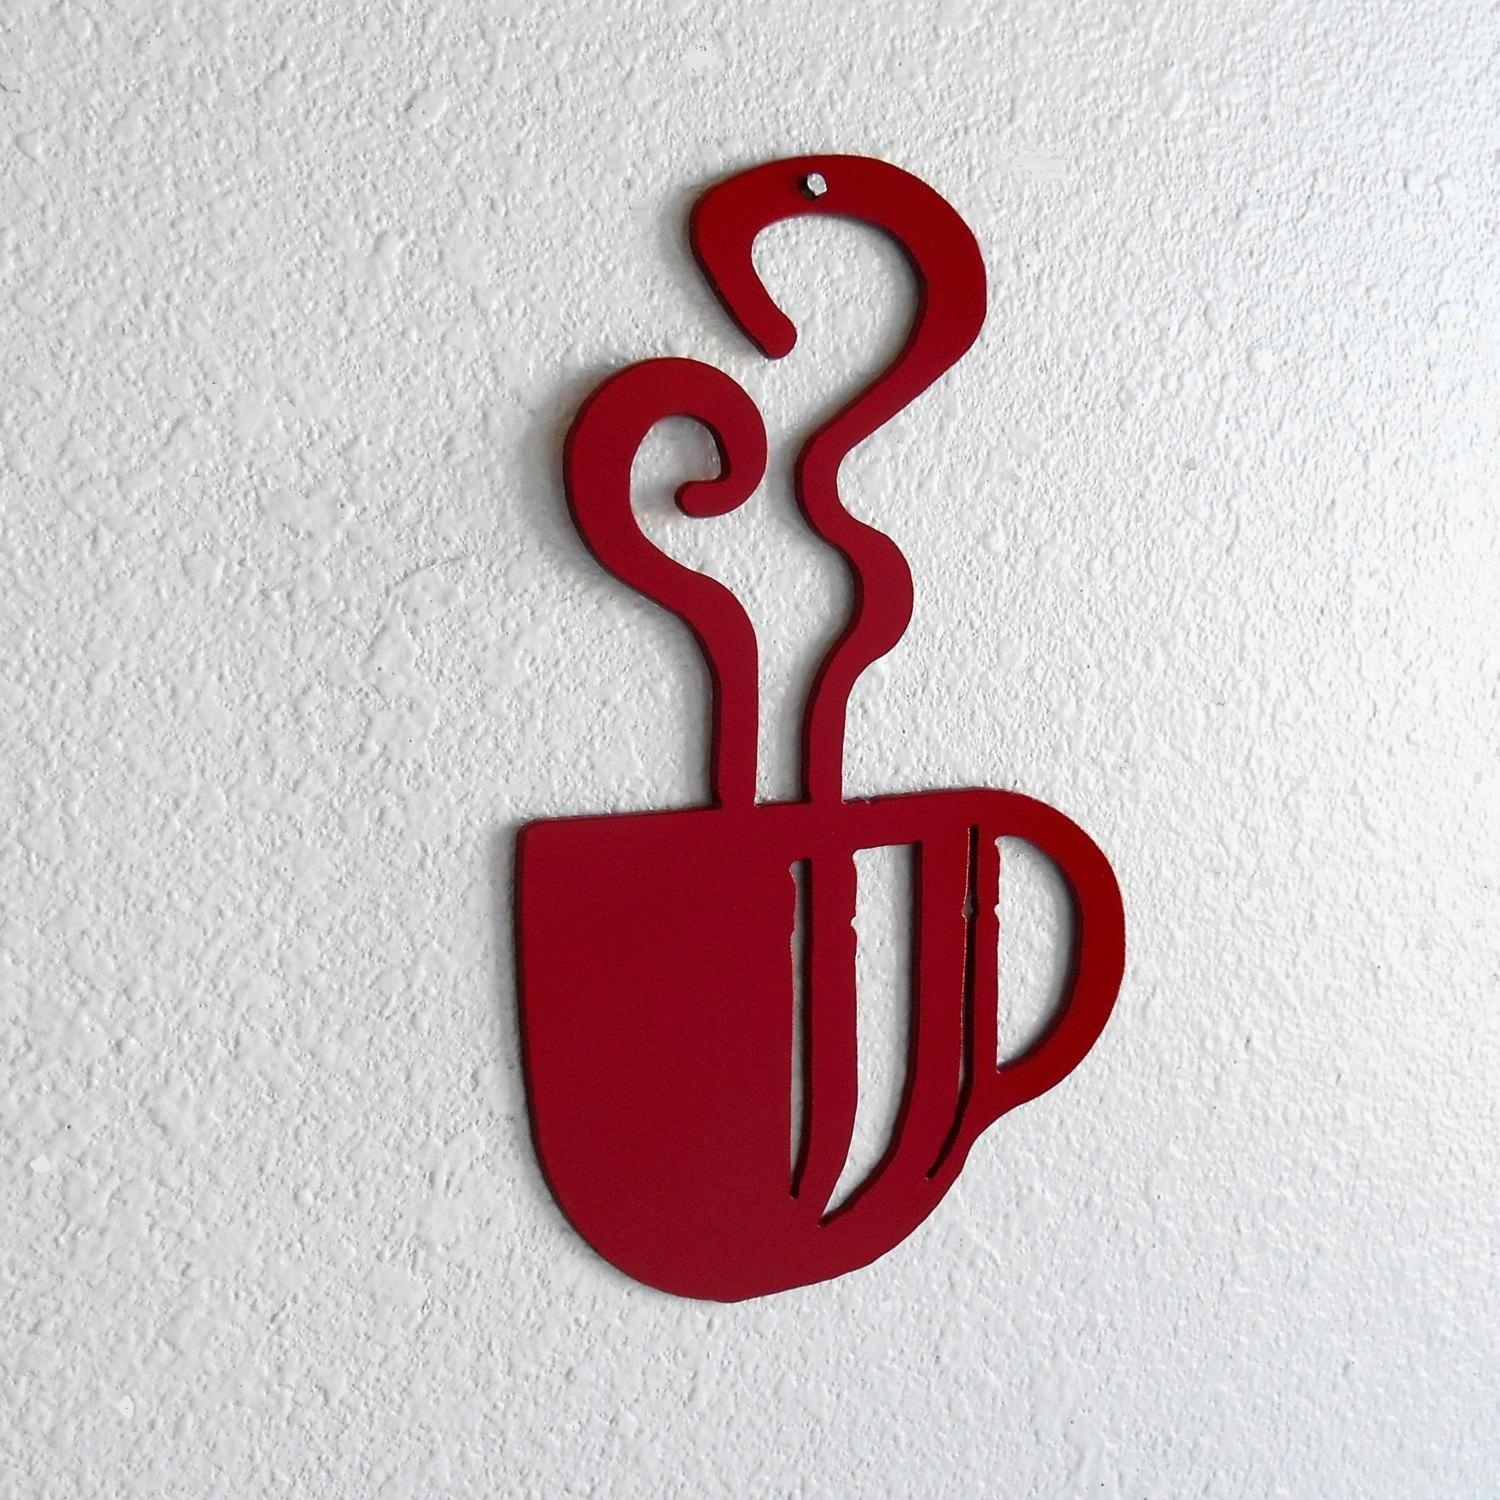 20 best ideas metal coffee cup wall art wall art ideas coffee decor just 4 the art of it intended for metal coffee cup wall art amipublicfo Gallery